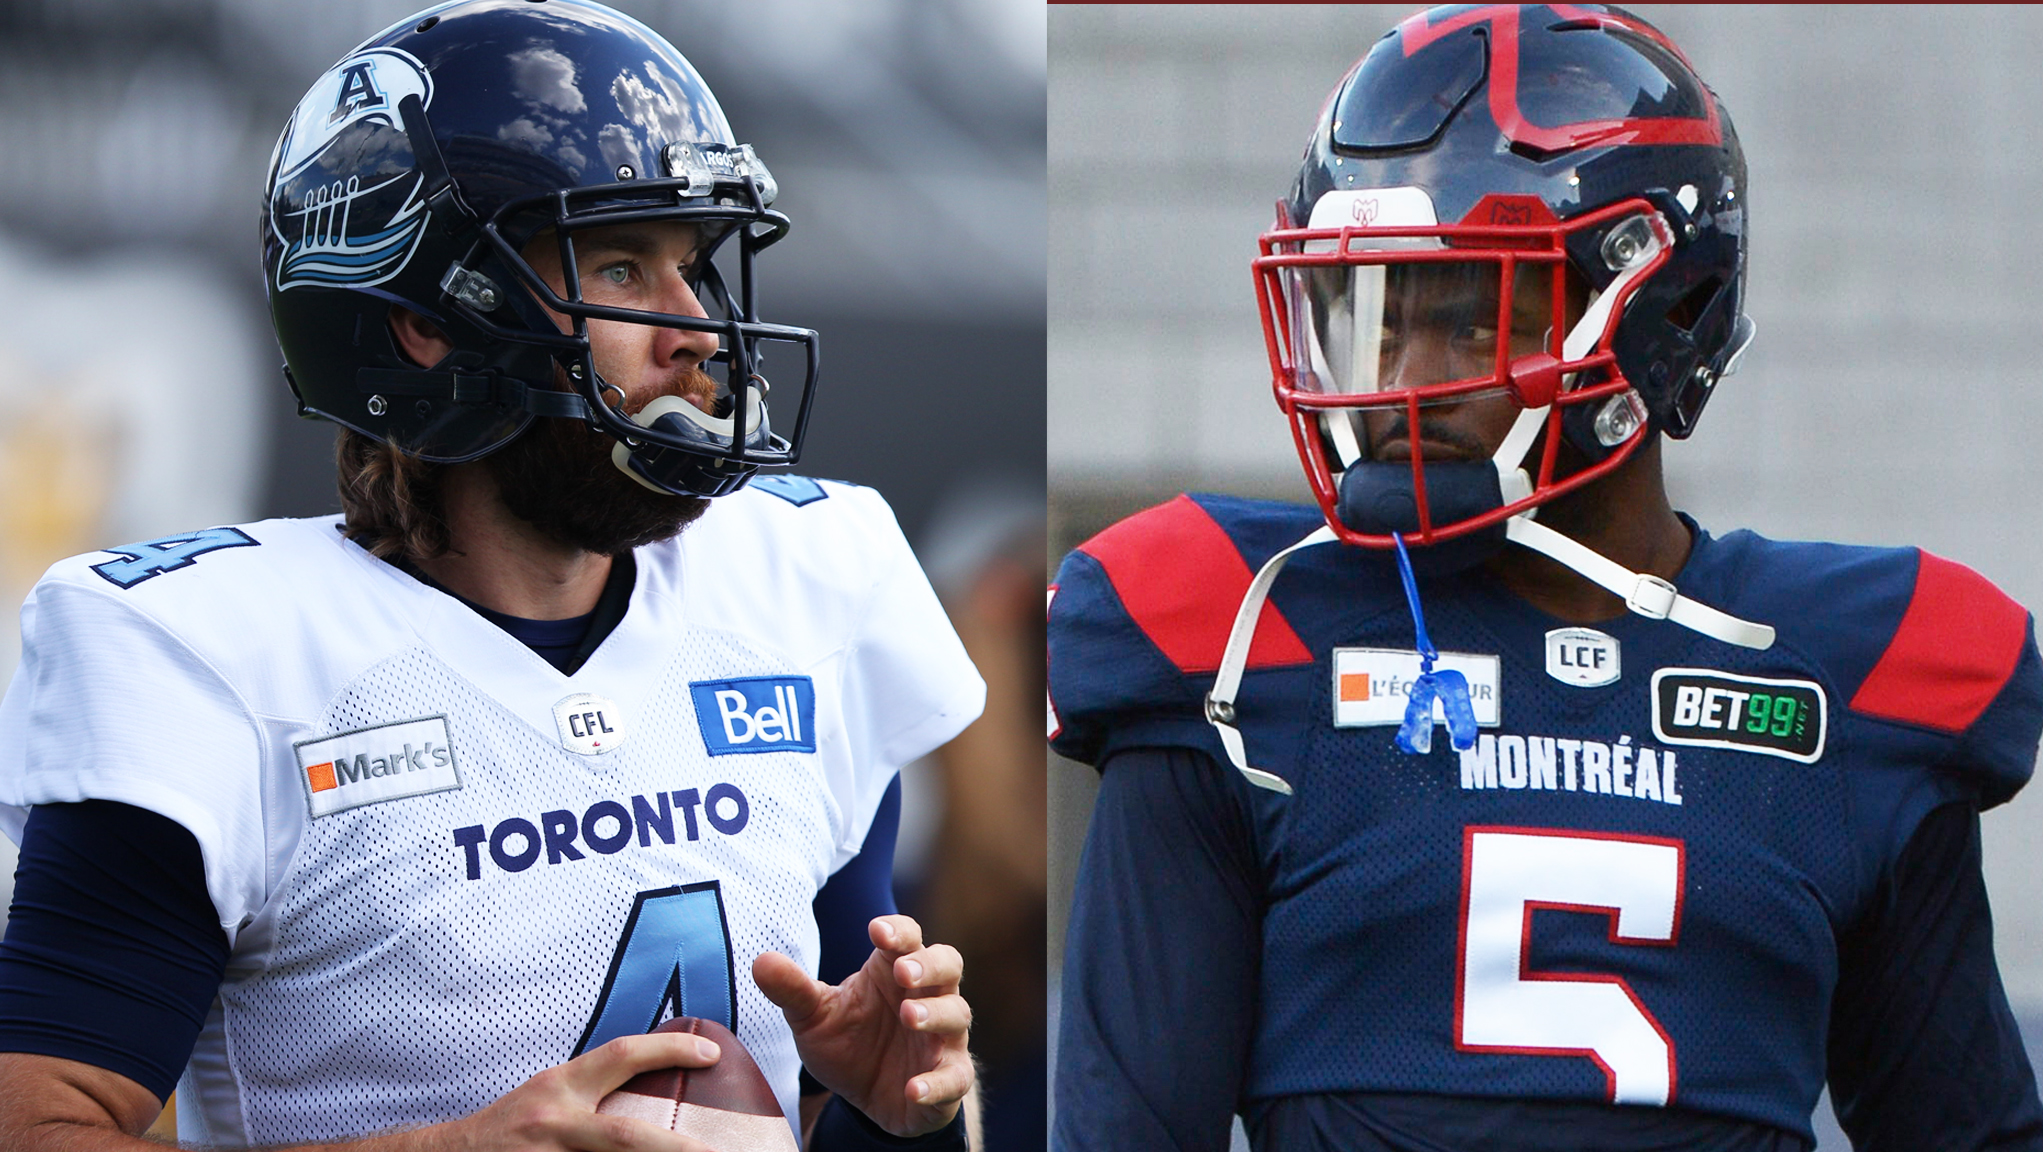 Bethel-Thompson leads the way as Argos host Alouettes